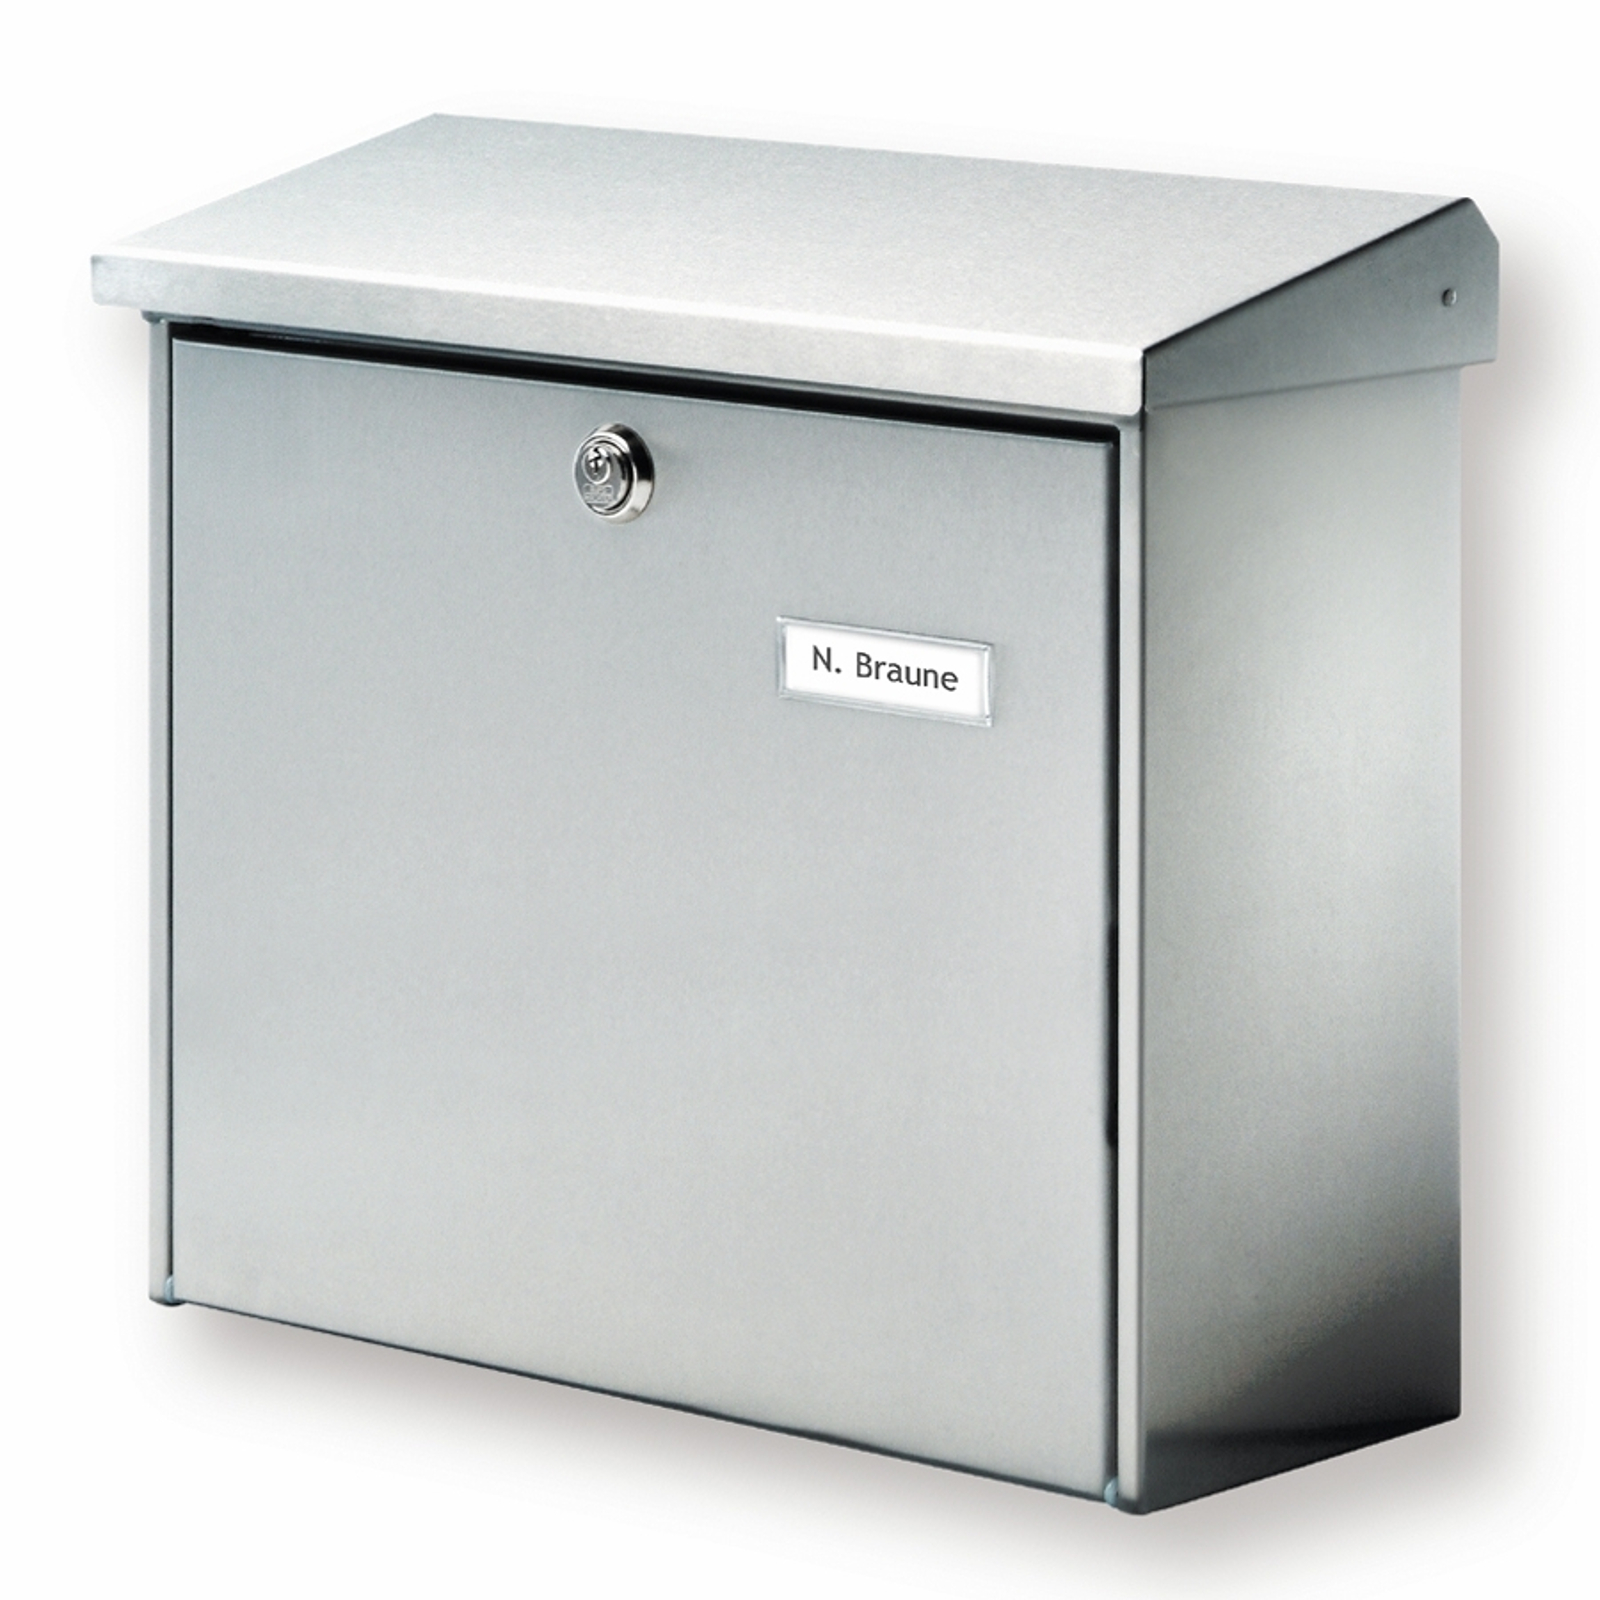 Stainless steel letterbox Comfort_1532028_1